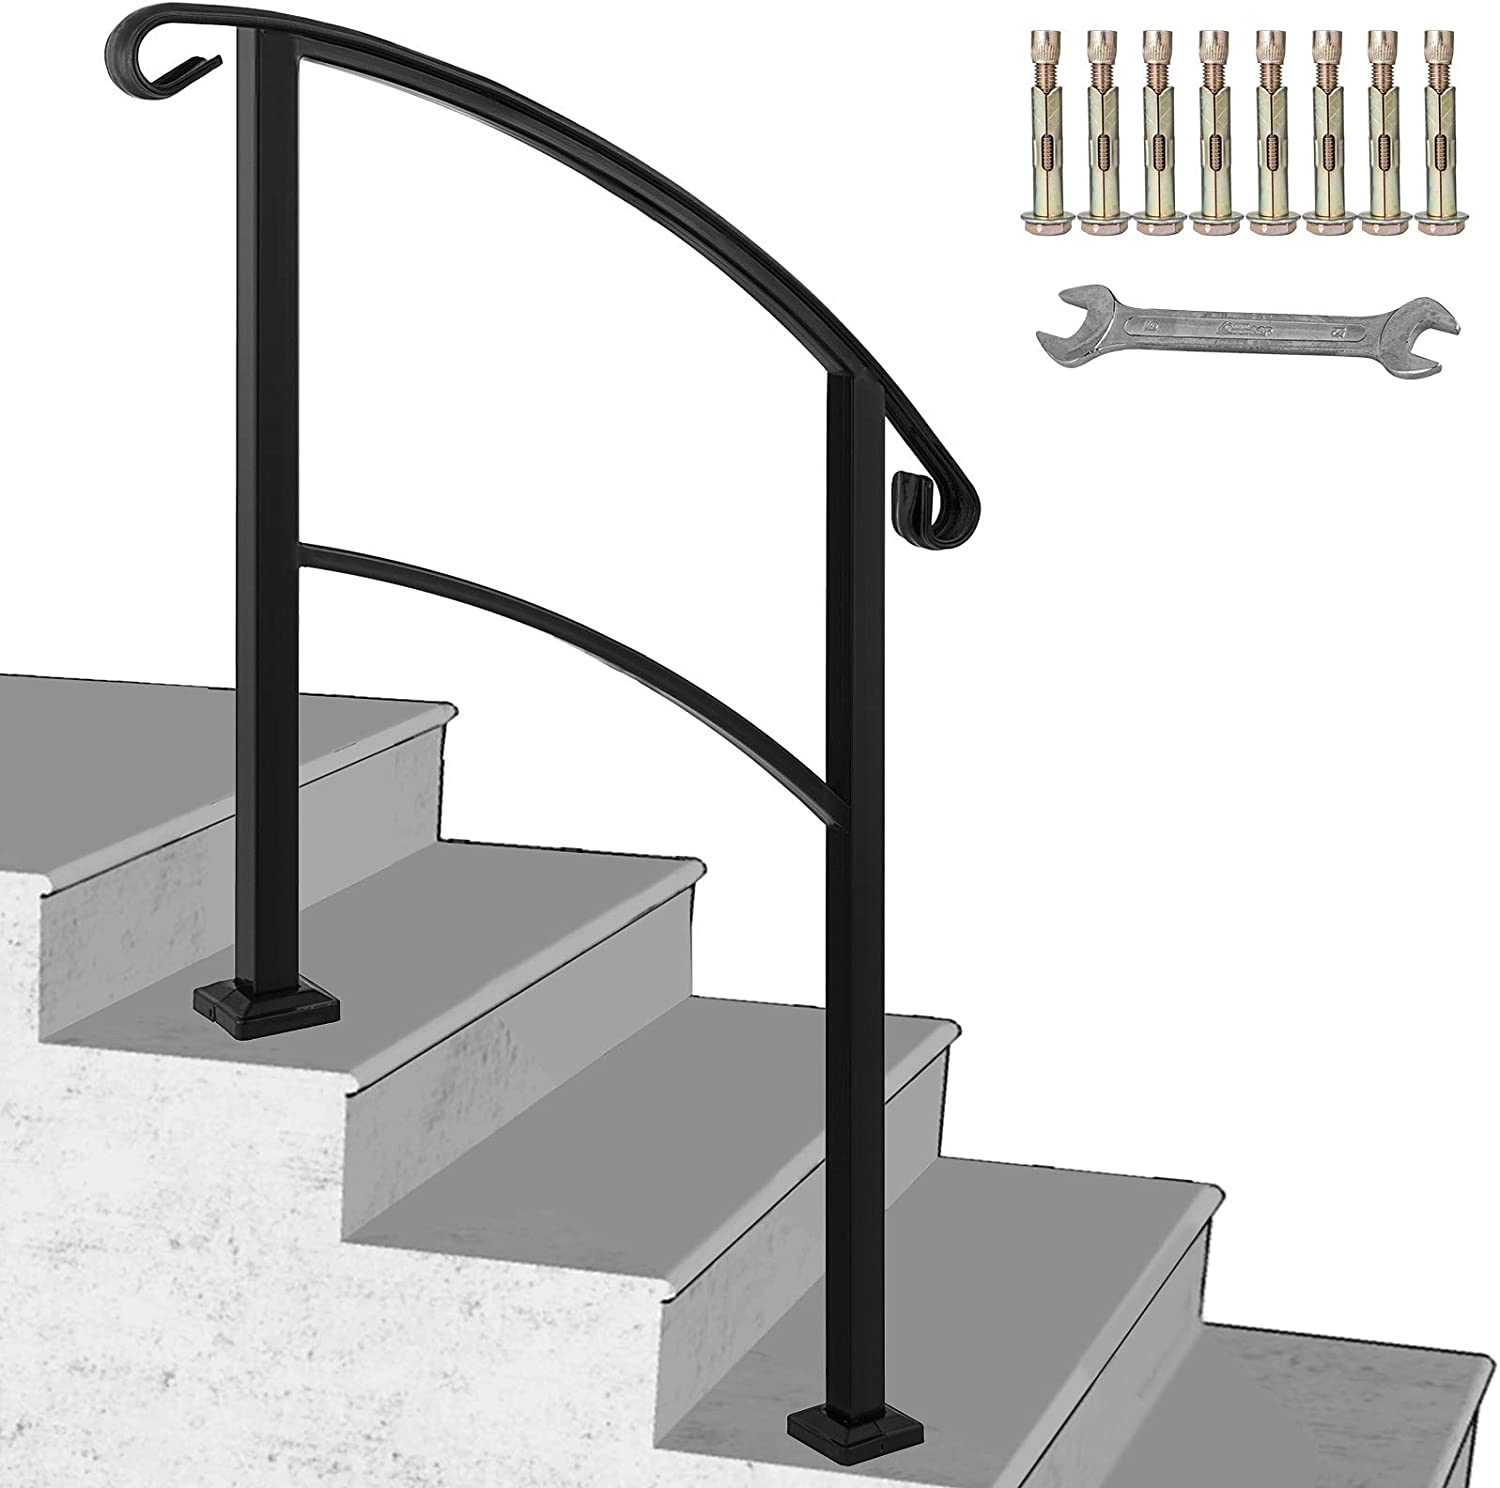 Happybuy 3 Step Transitional Handrail Fits 1 Or 3 Steps Matte | Adding Wood To Wrought Iron Railing | Cedar | Entryway | Rod Iron | Repair | Process Fabrication